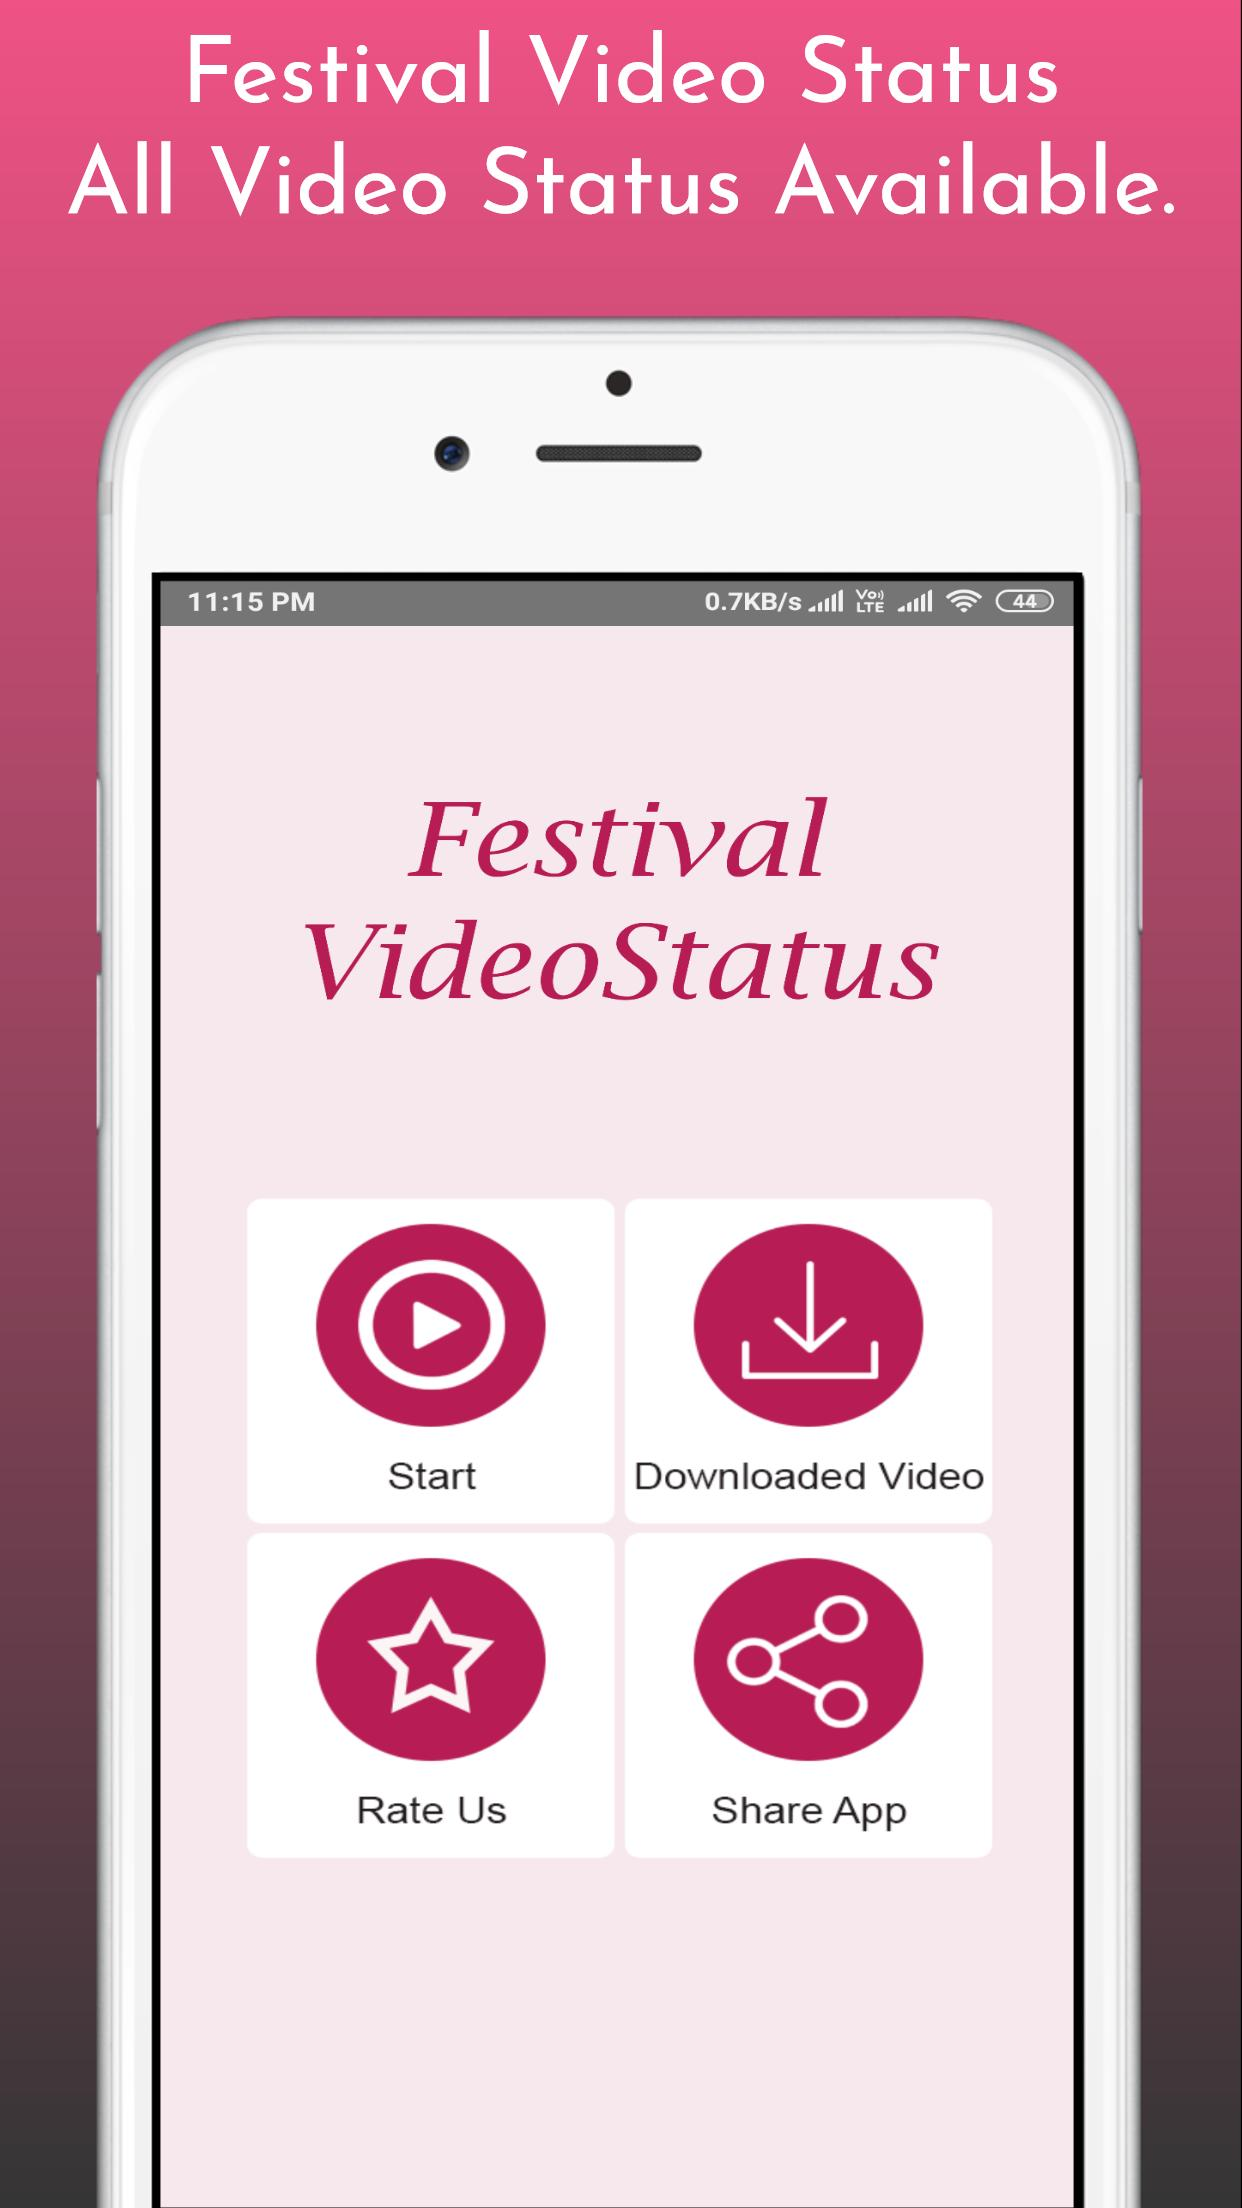 Festival Video Status for Android - APK Download